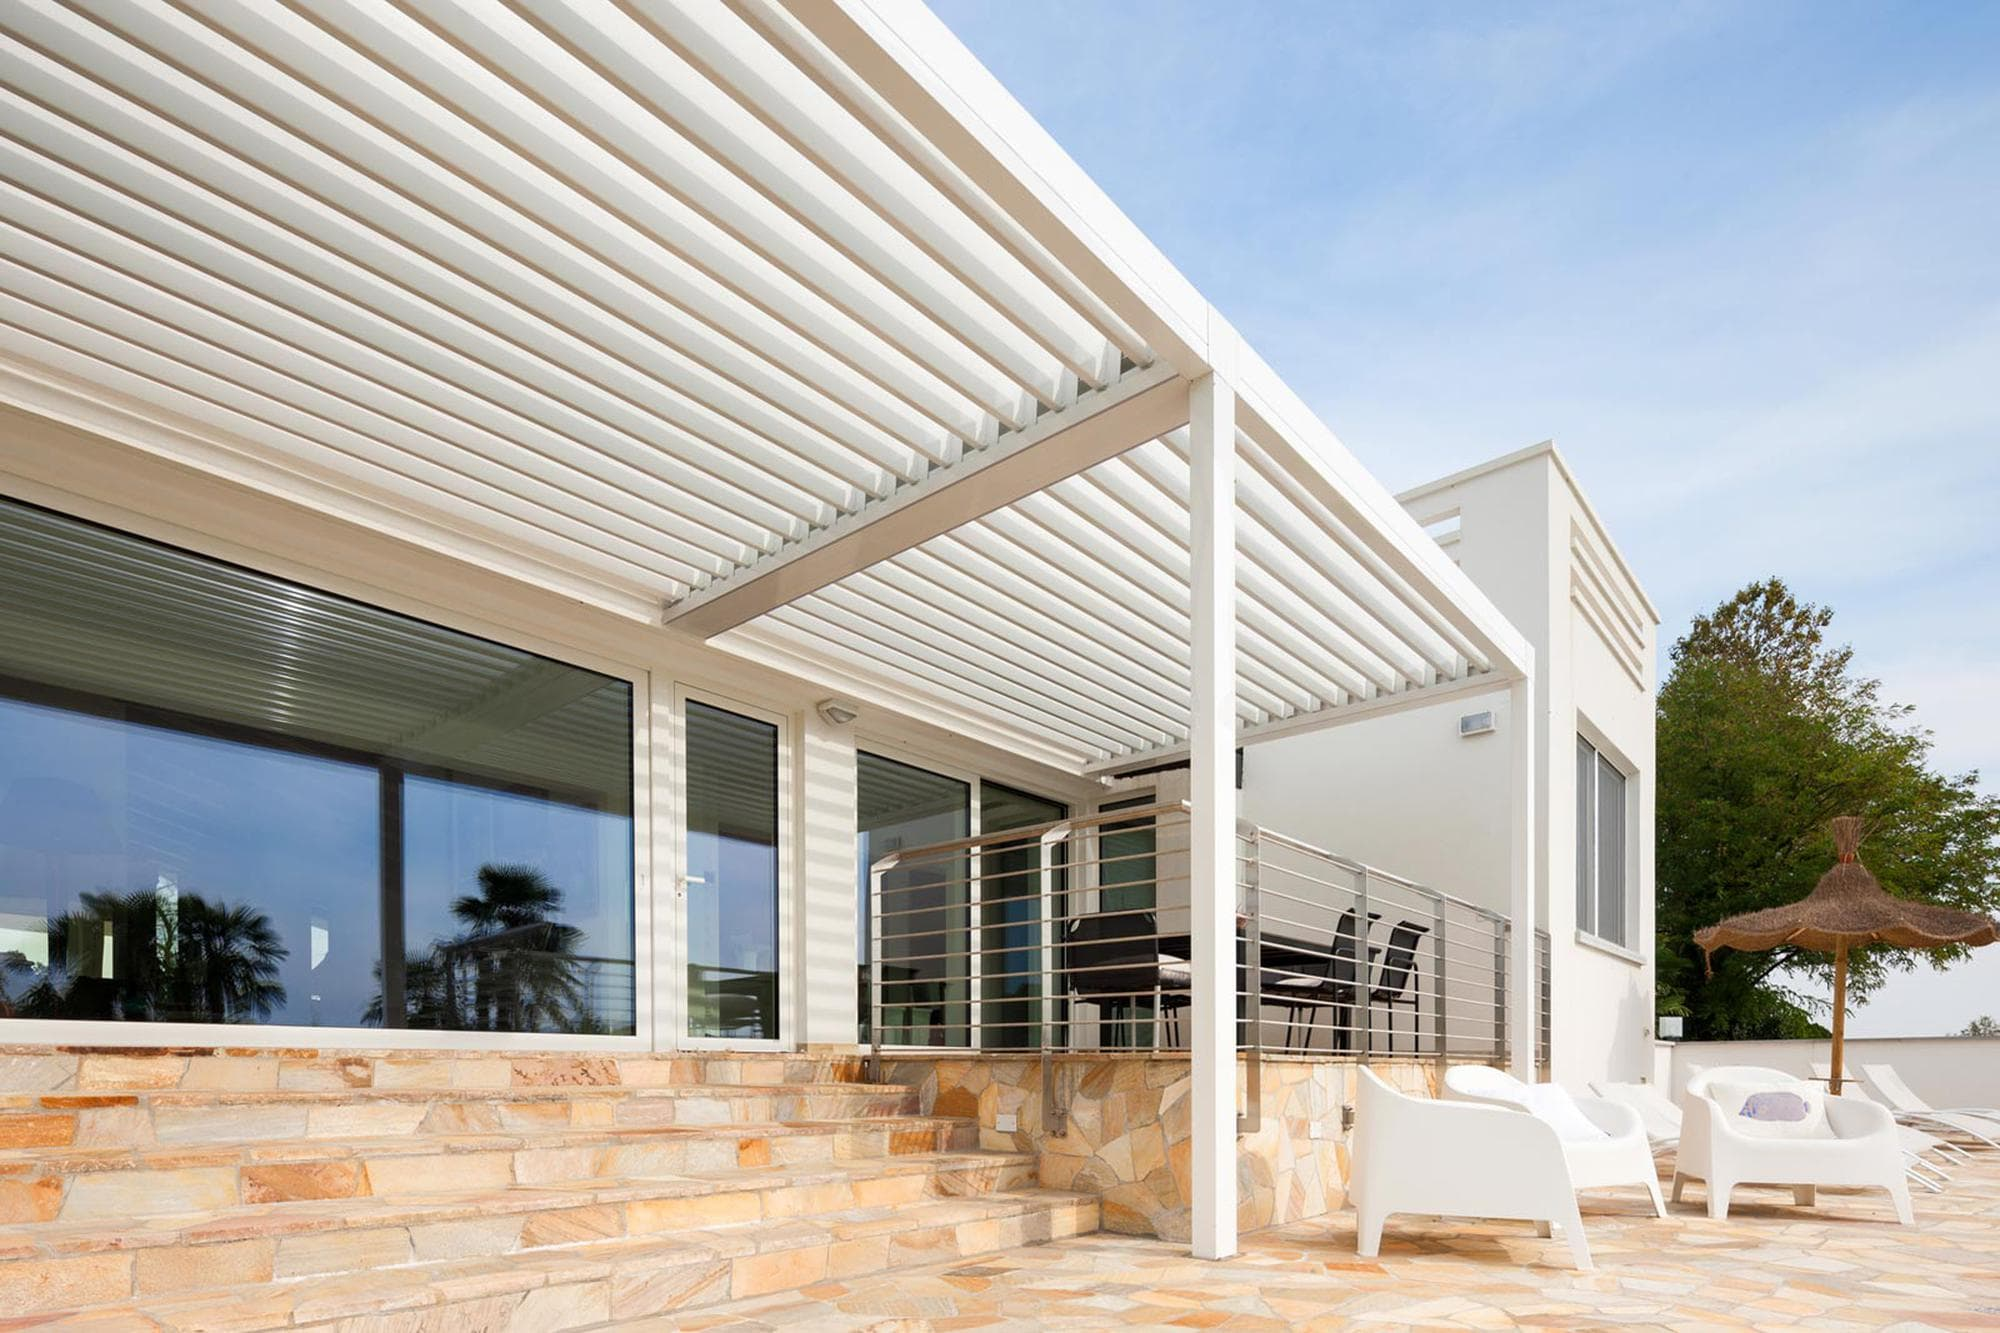 7 patio cover ideas for your backyard